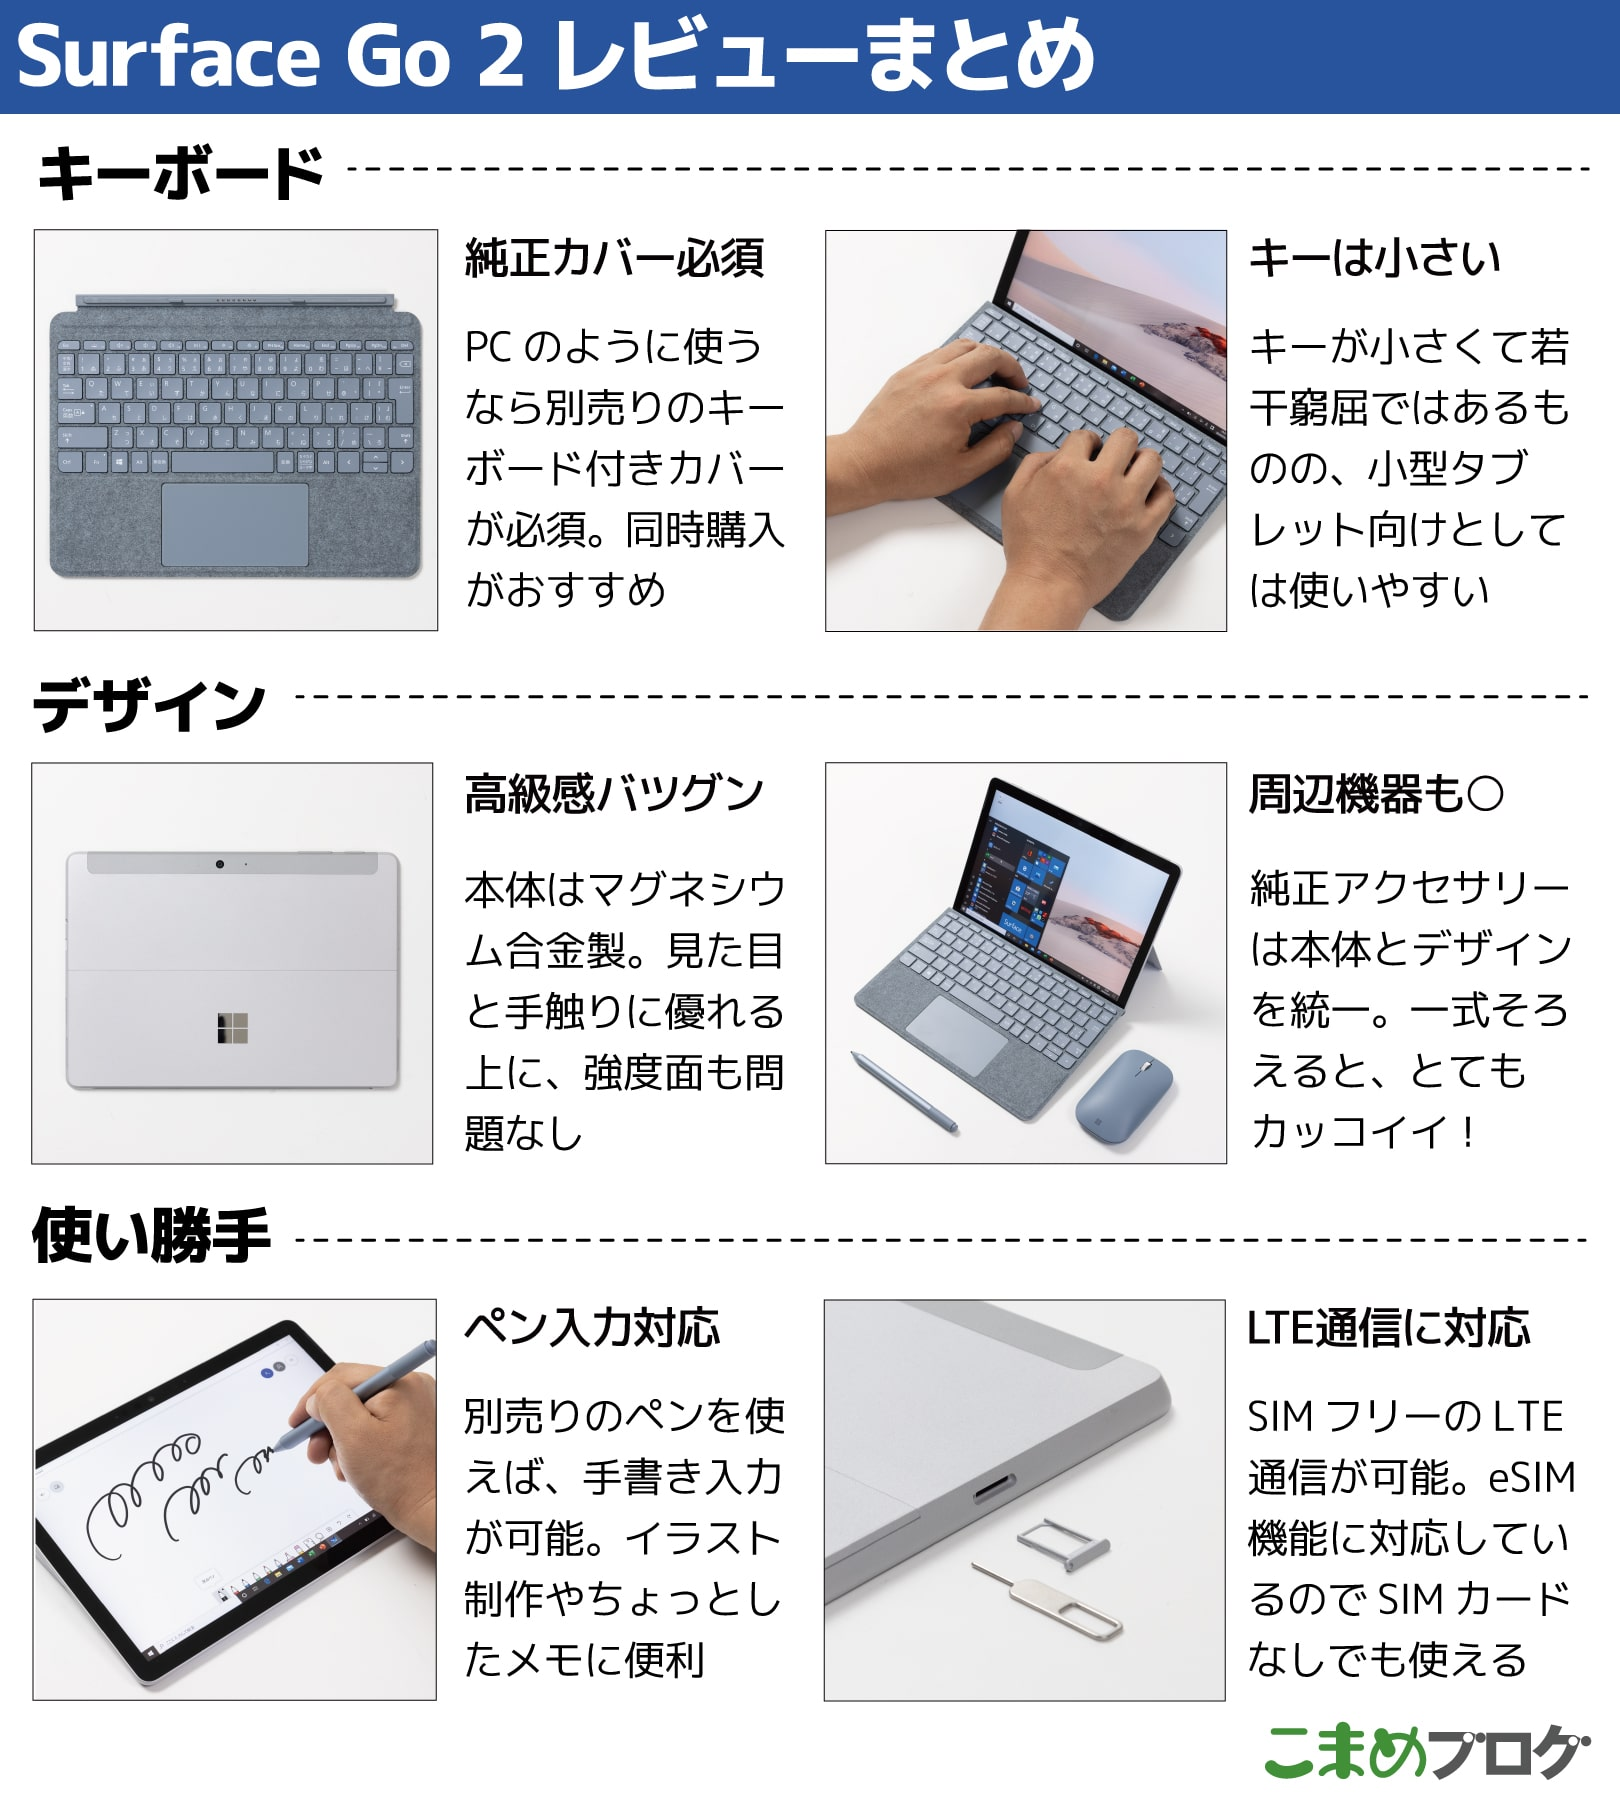 Surface Go 2 まとめ